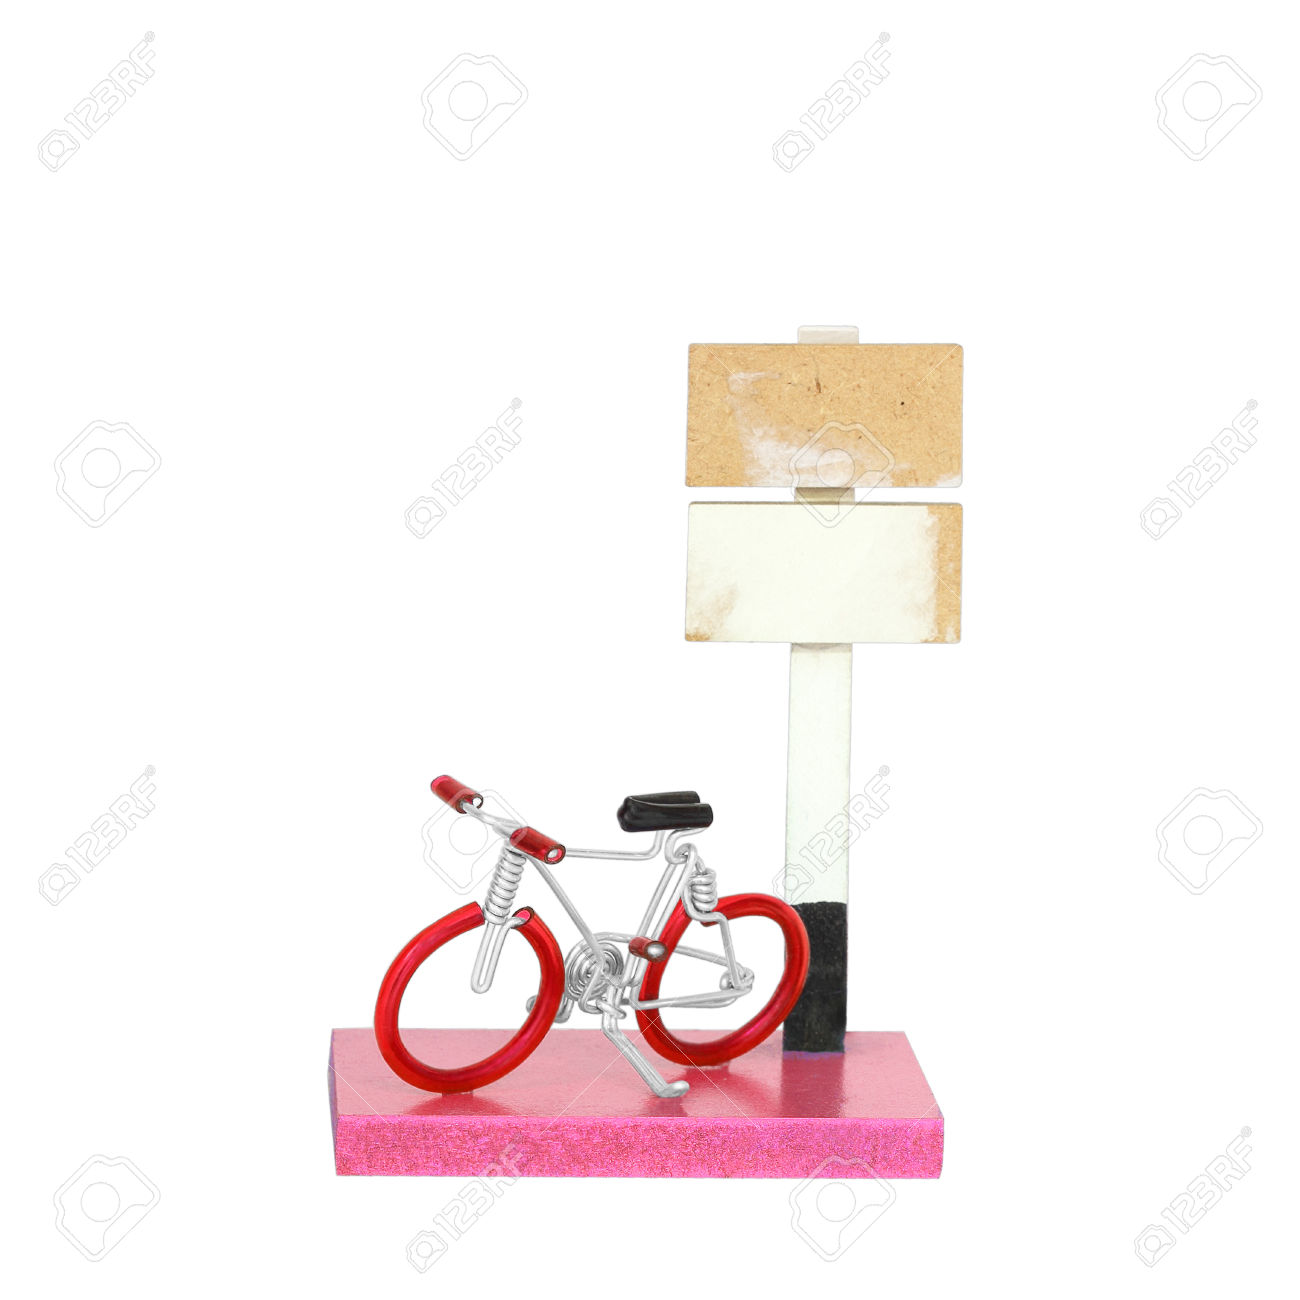 Craft Bicycle Made By Aluminium Wire Isolated On White Background.